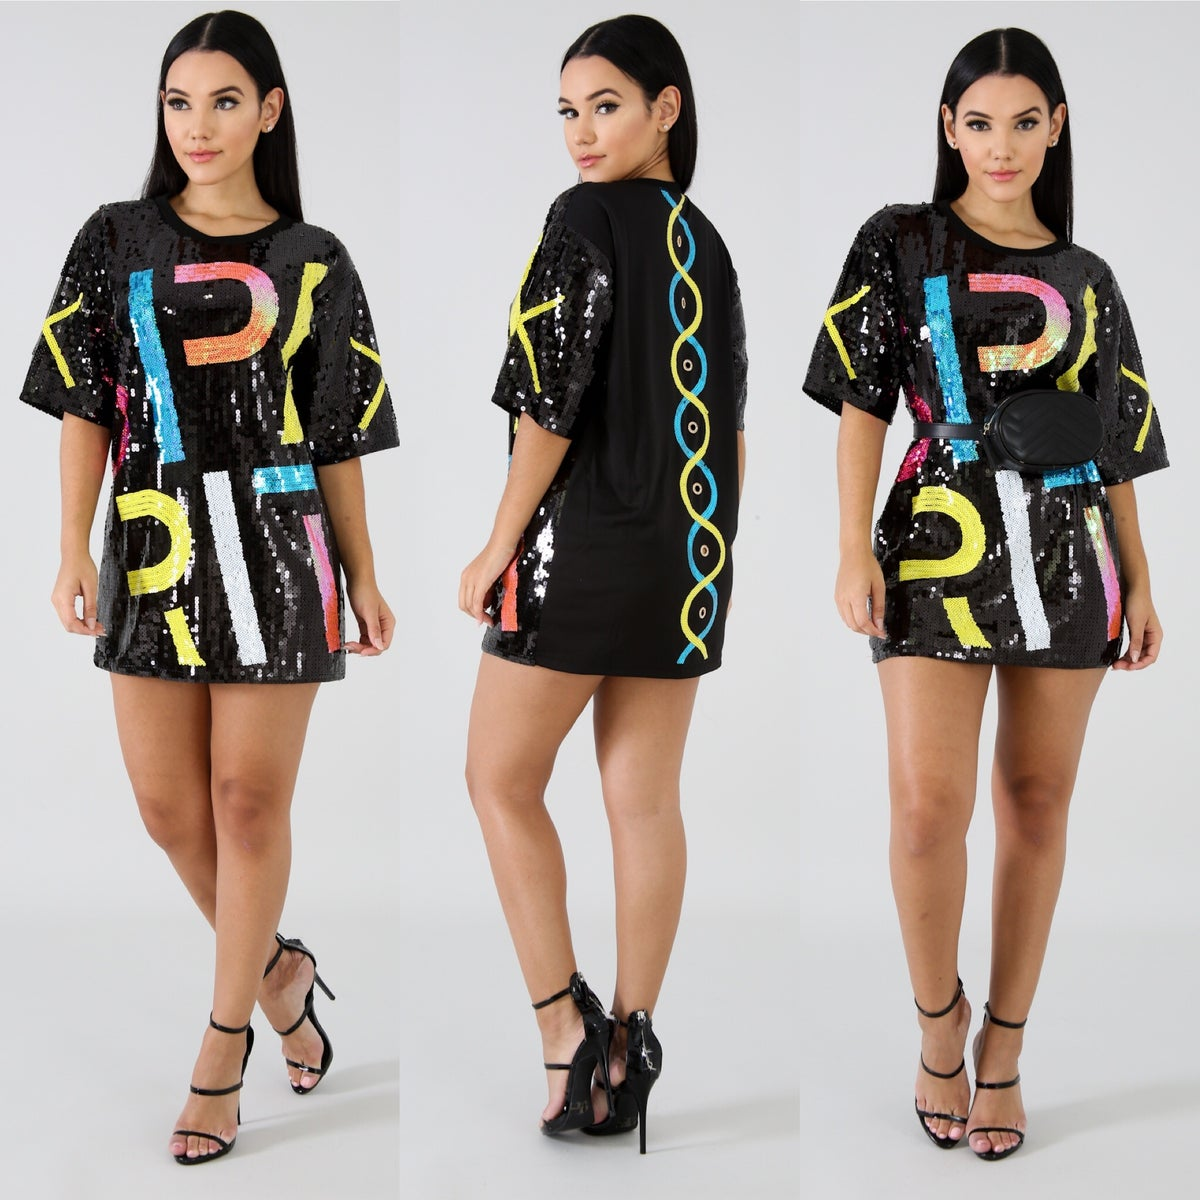 Image of 'Tardy to the Party' Top/Dress